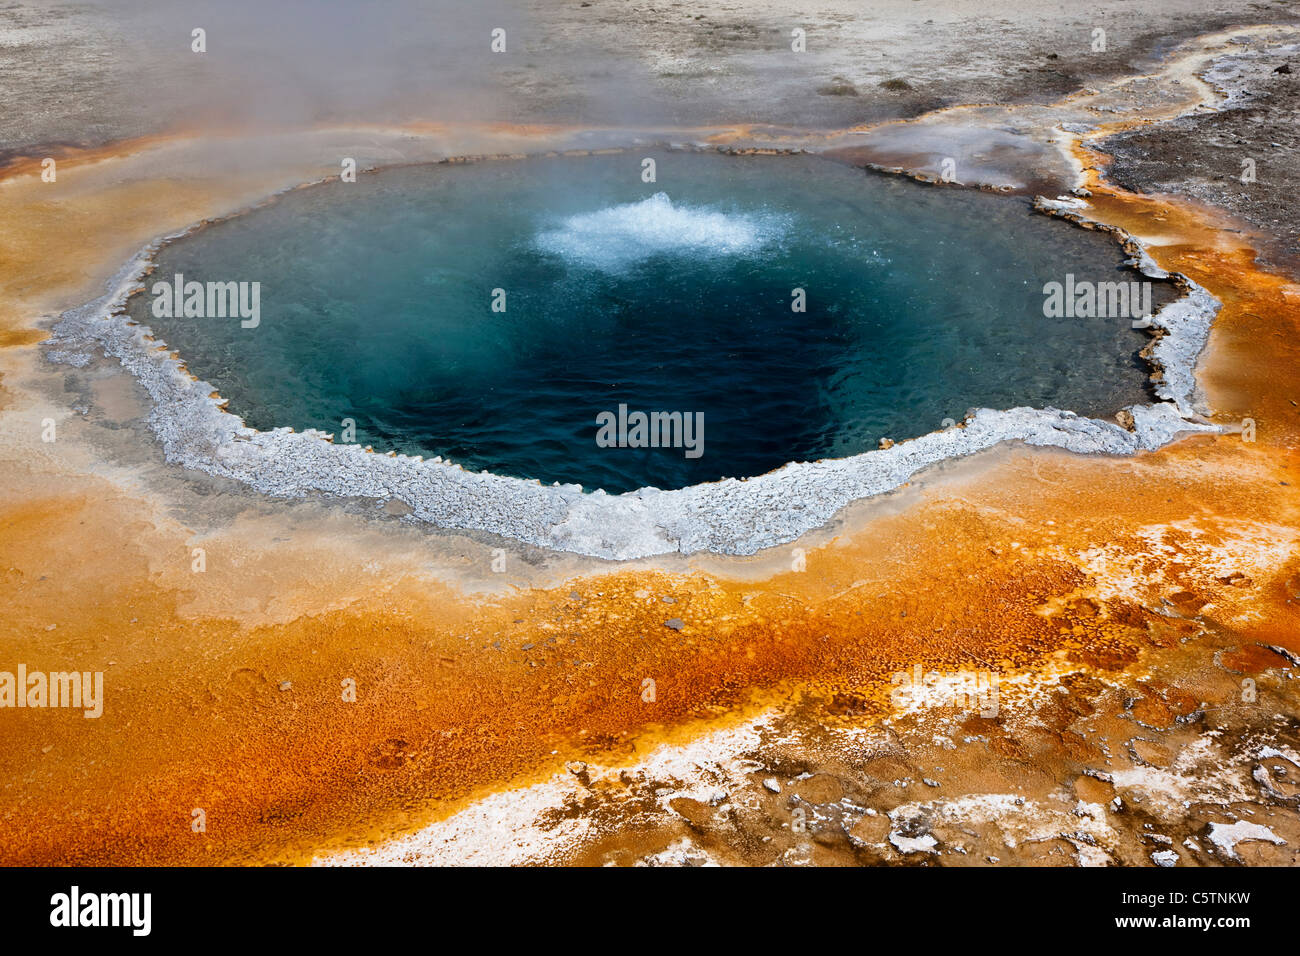 USA, Wyoming, Yellowstone Park, Crested Pool - Stock Image